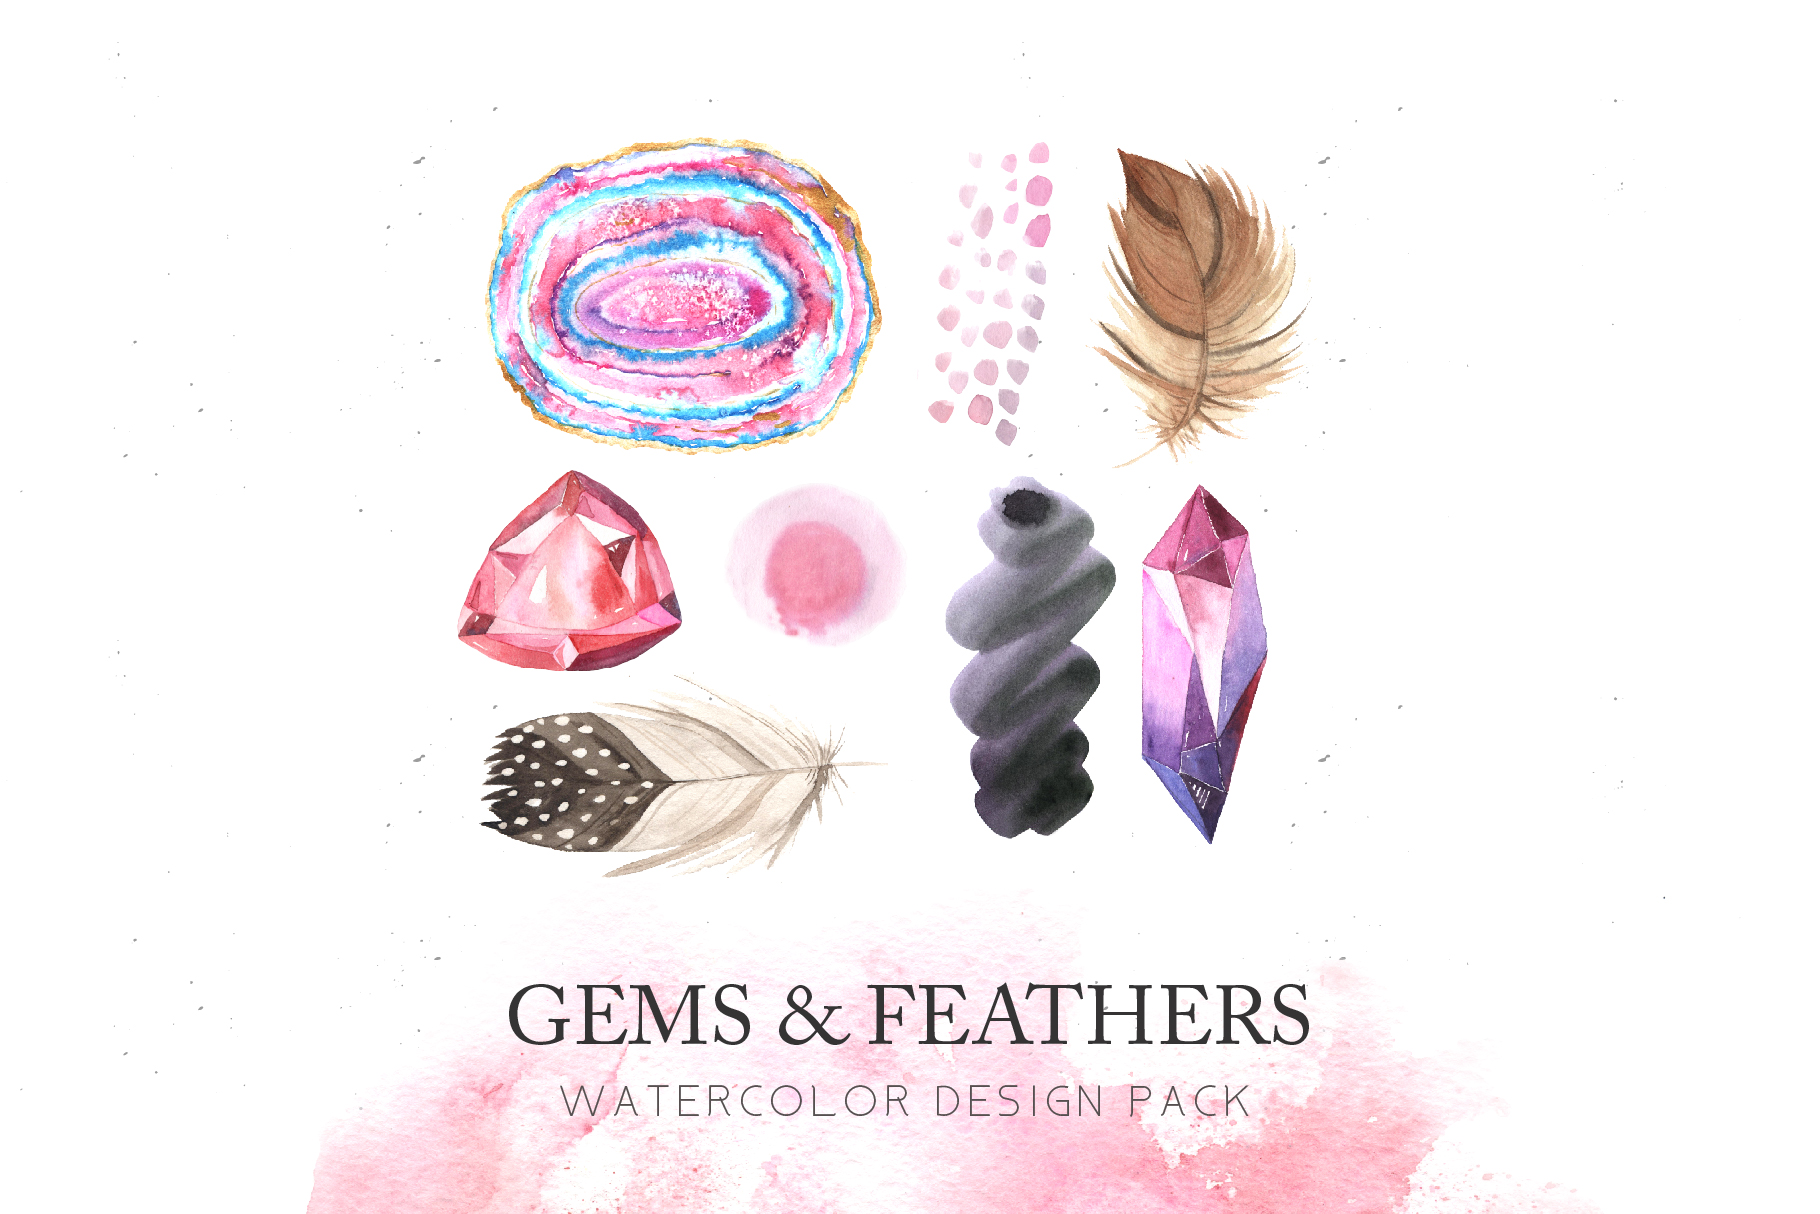 Download Free Watercolor Gems Feathers Set Graphic By Larysa Zabrotskaya for Cricut Explore, Silhouette and other cutting machines.